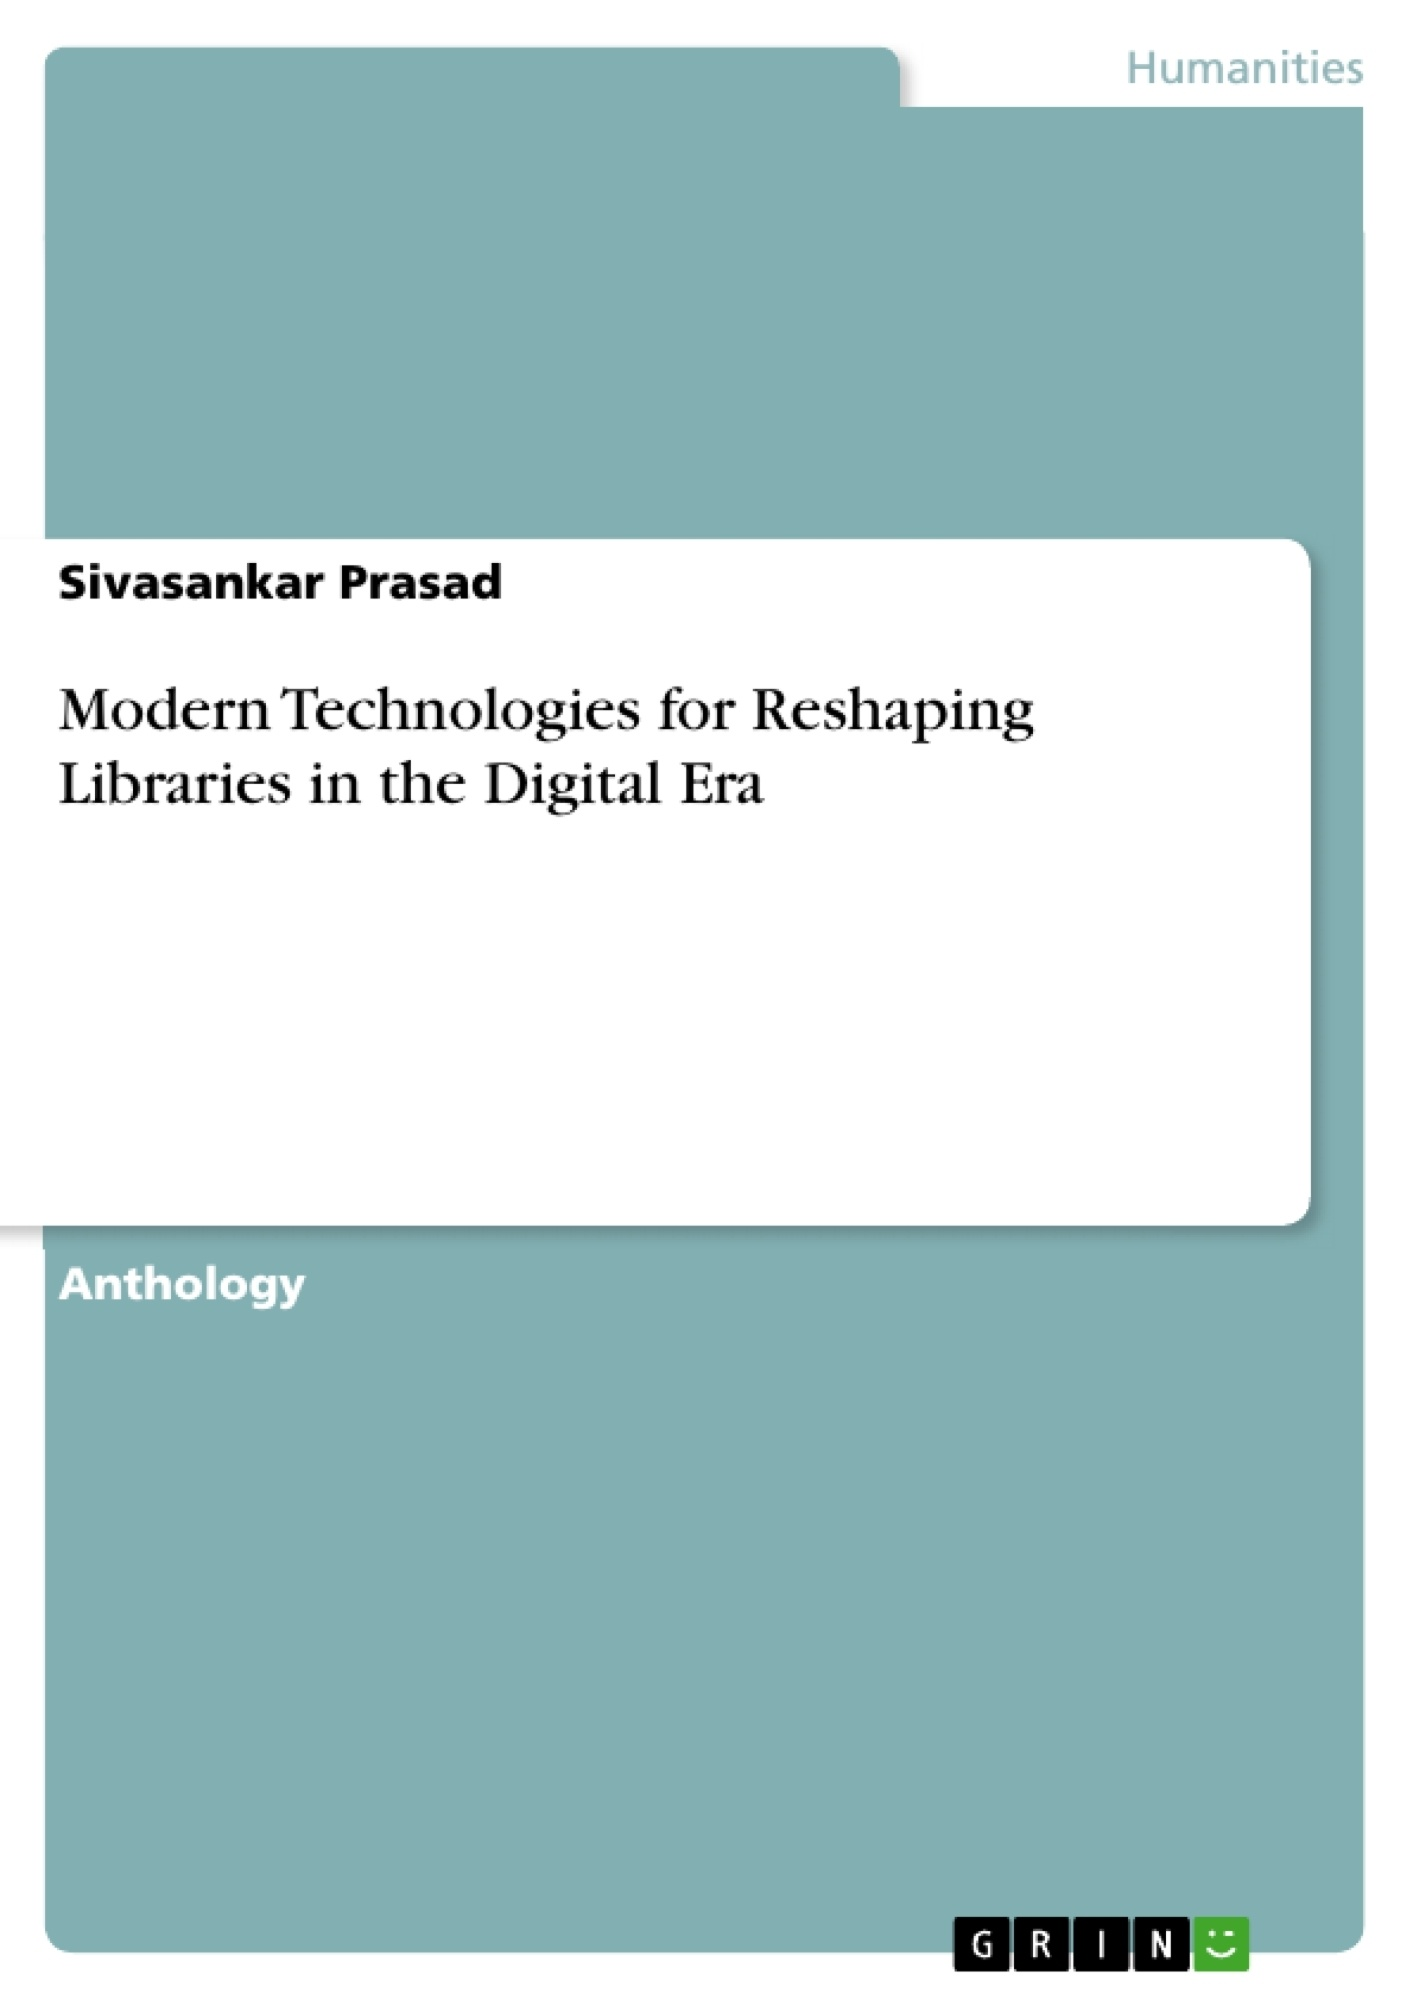 Title: Modern Technologies for Reshaping Libraries in the  Digital Era